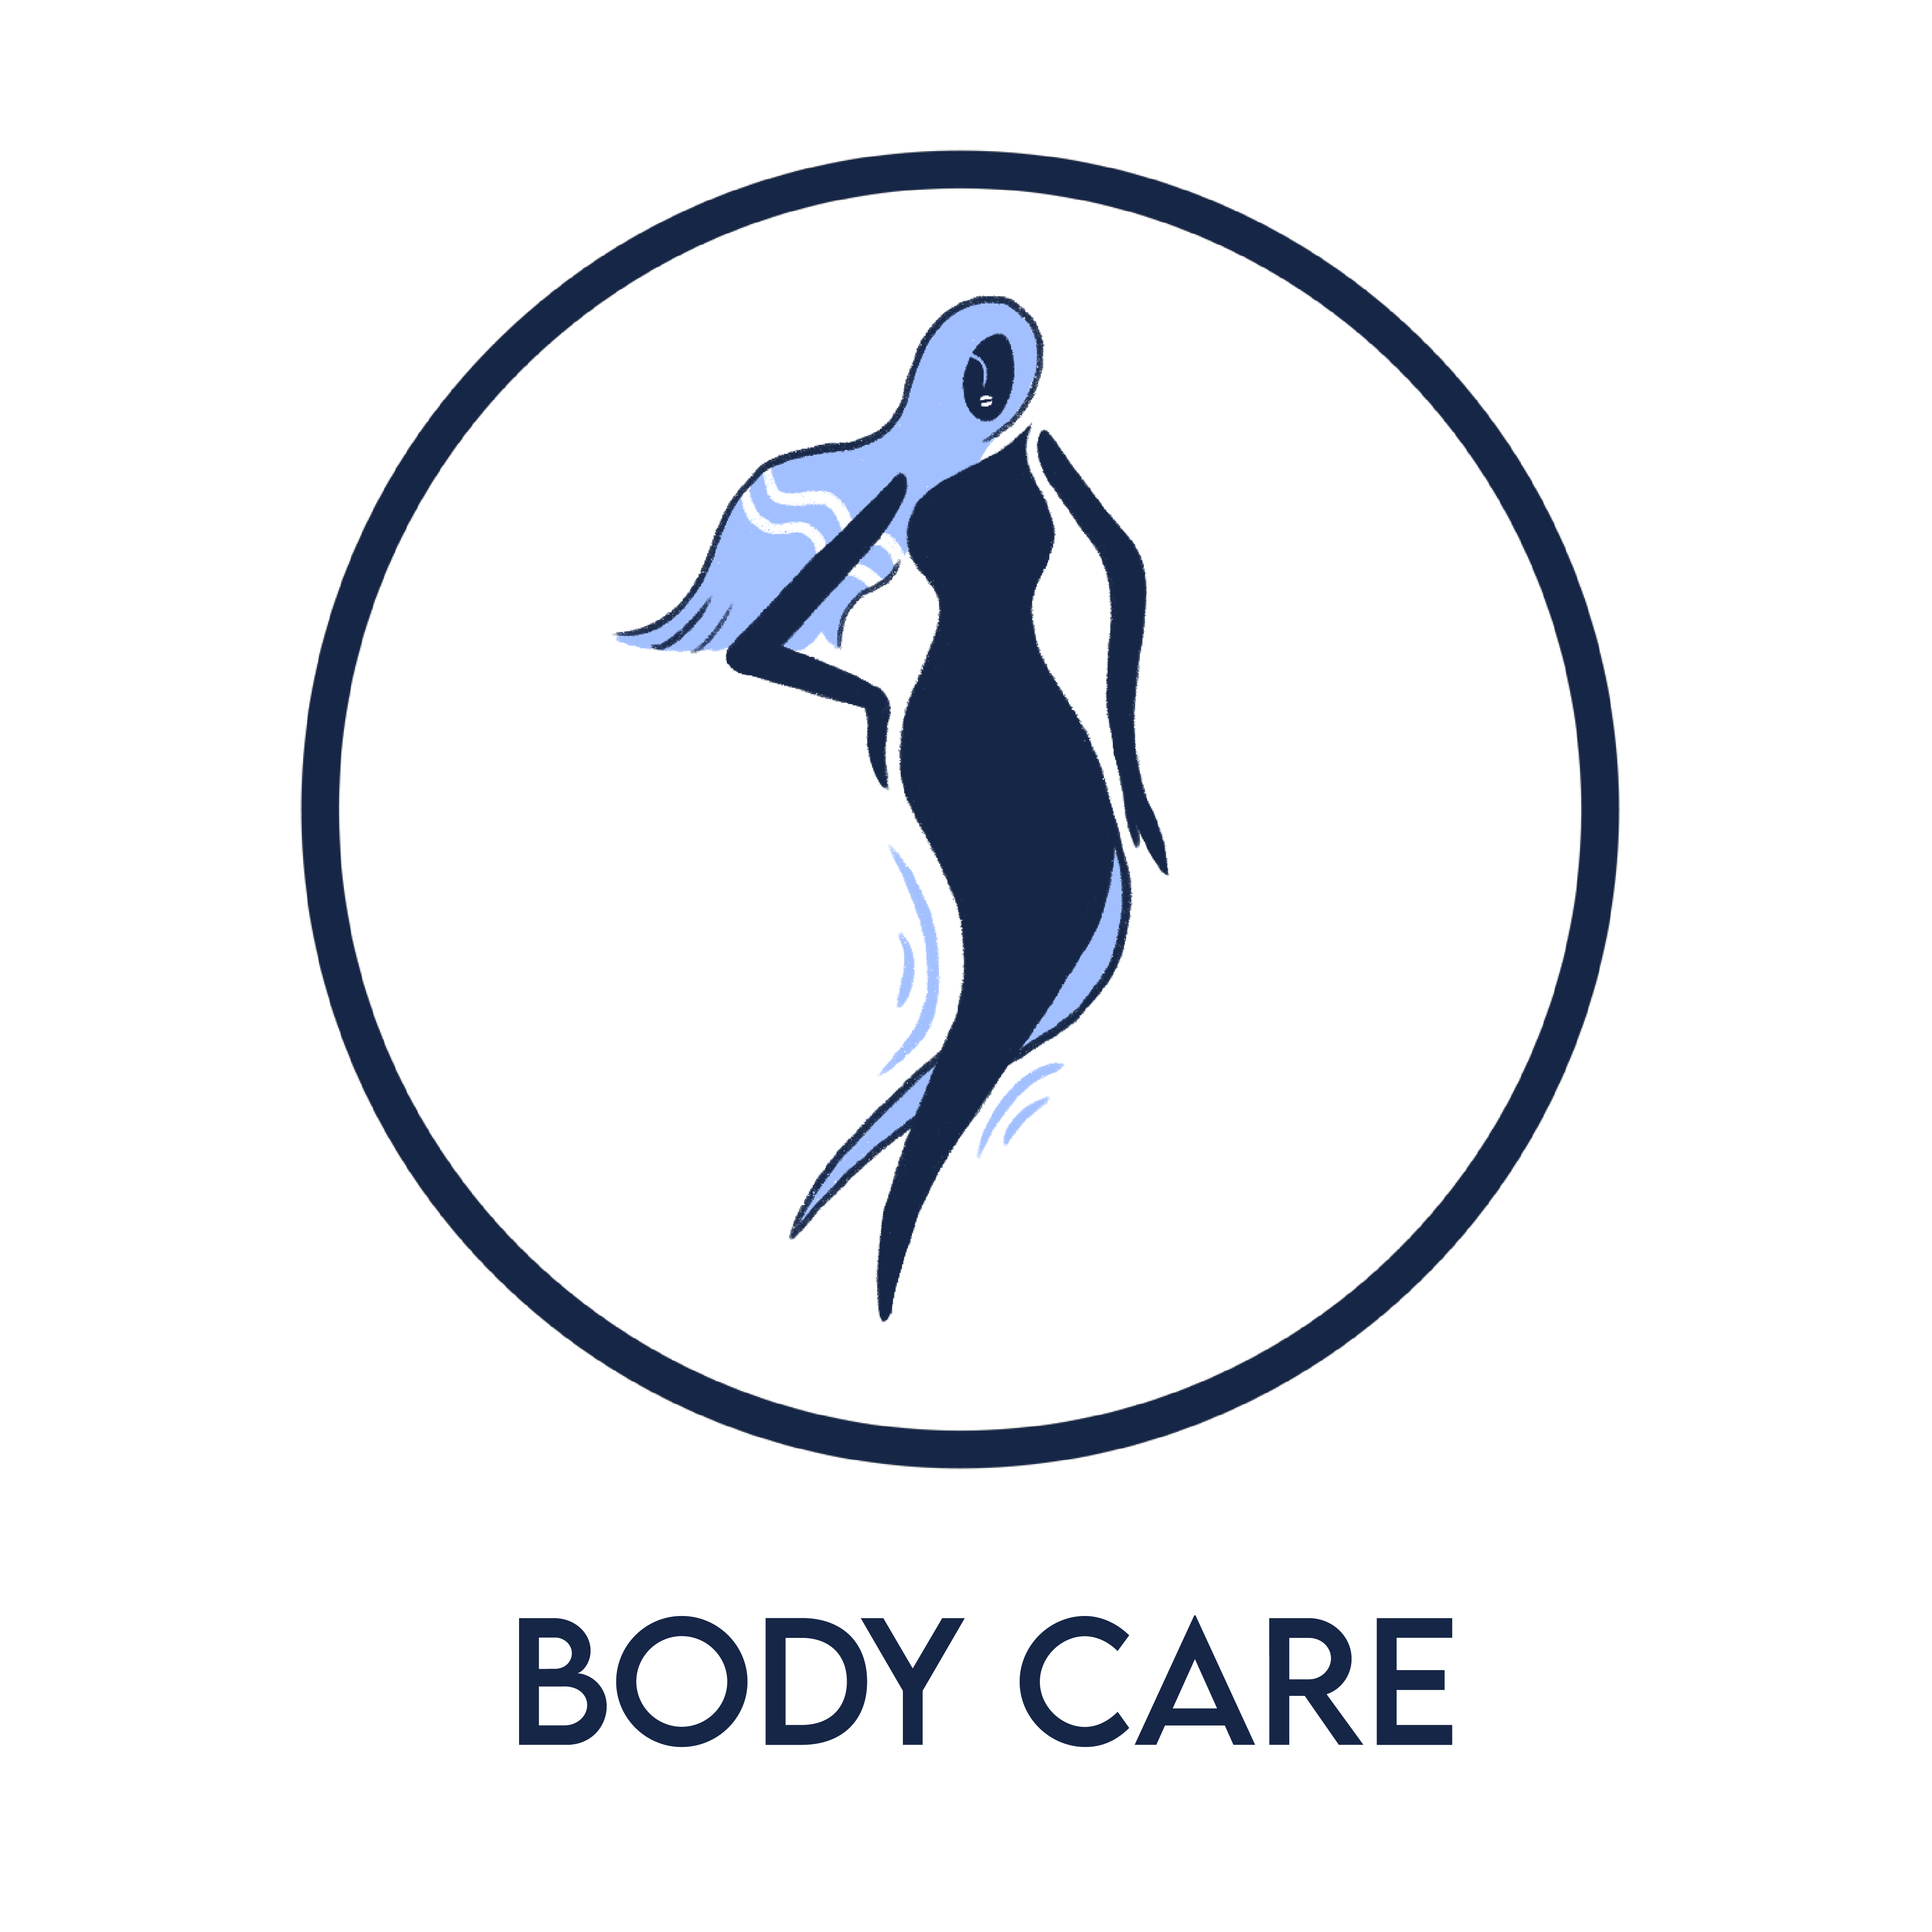 selfcareicons-04.png